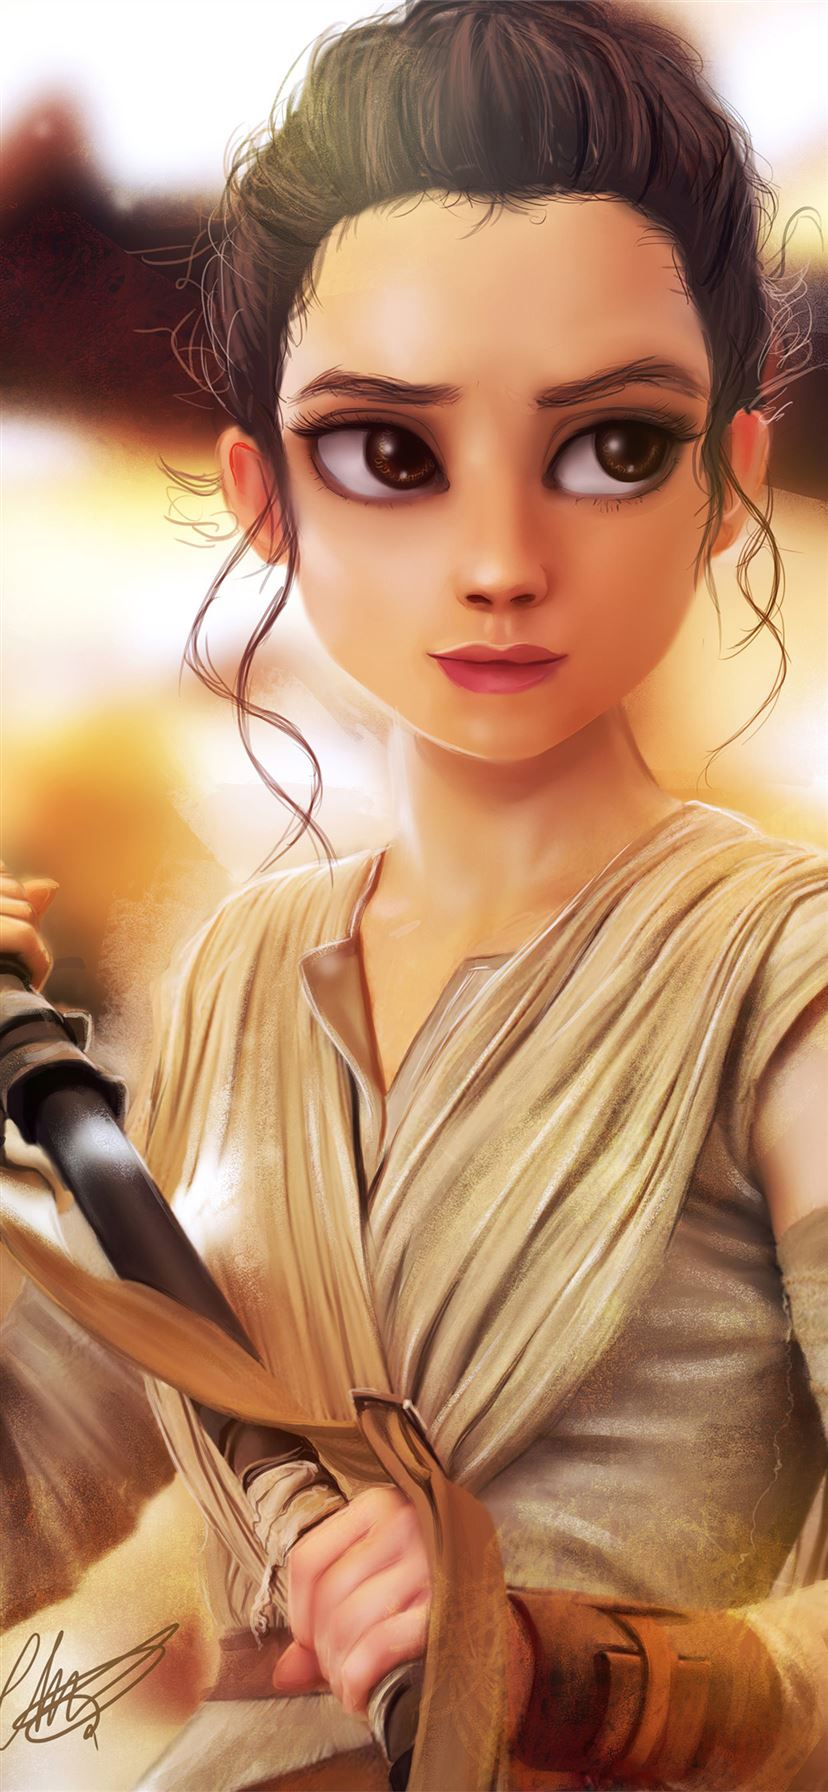 Rey Star Wars Art 4k Iphone 11 Wallpapers Free Download